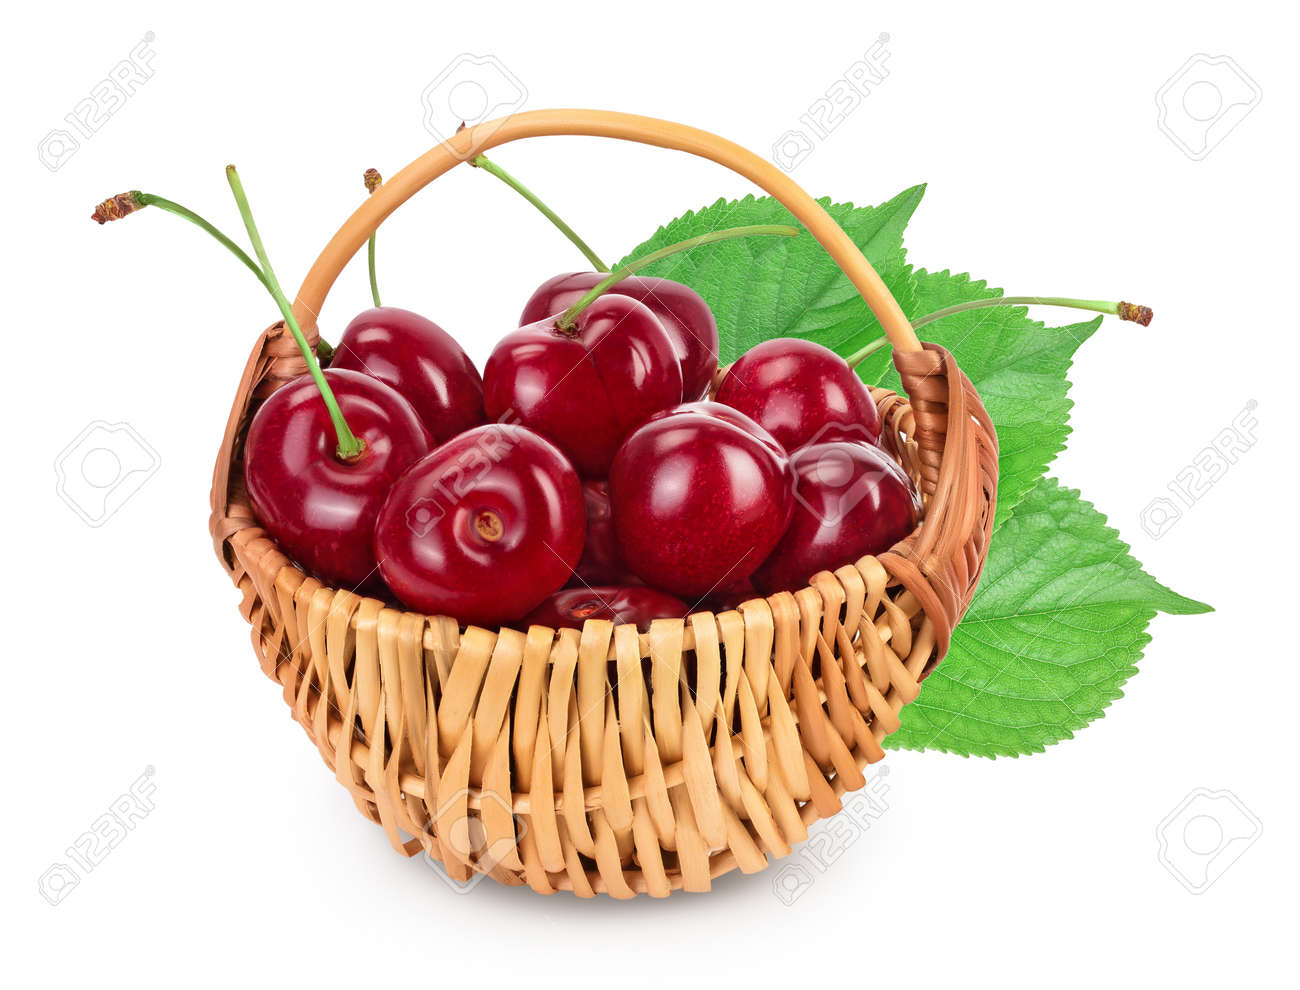 red sweet cherry in a wicker basket isolated on white background with clipping path and full depth of field - 155401238